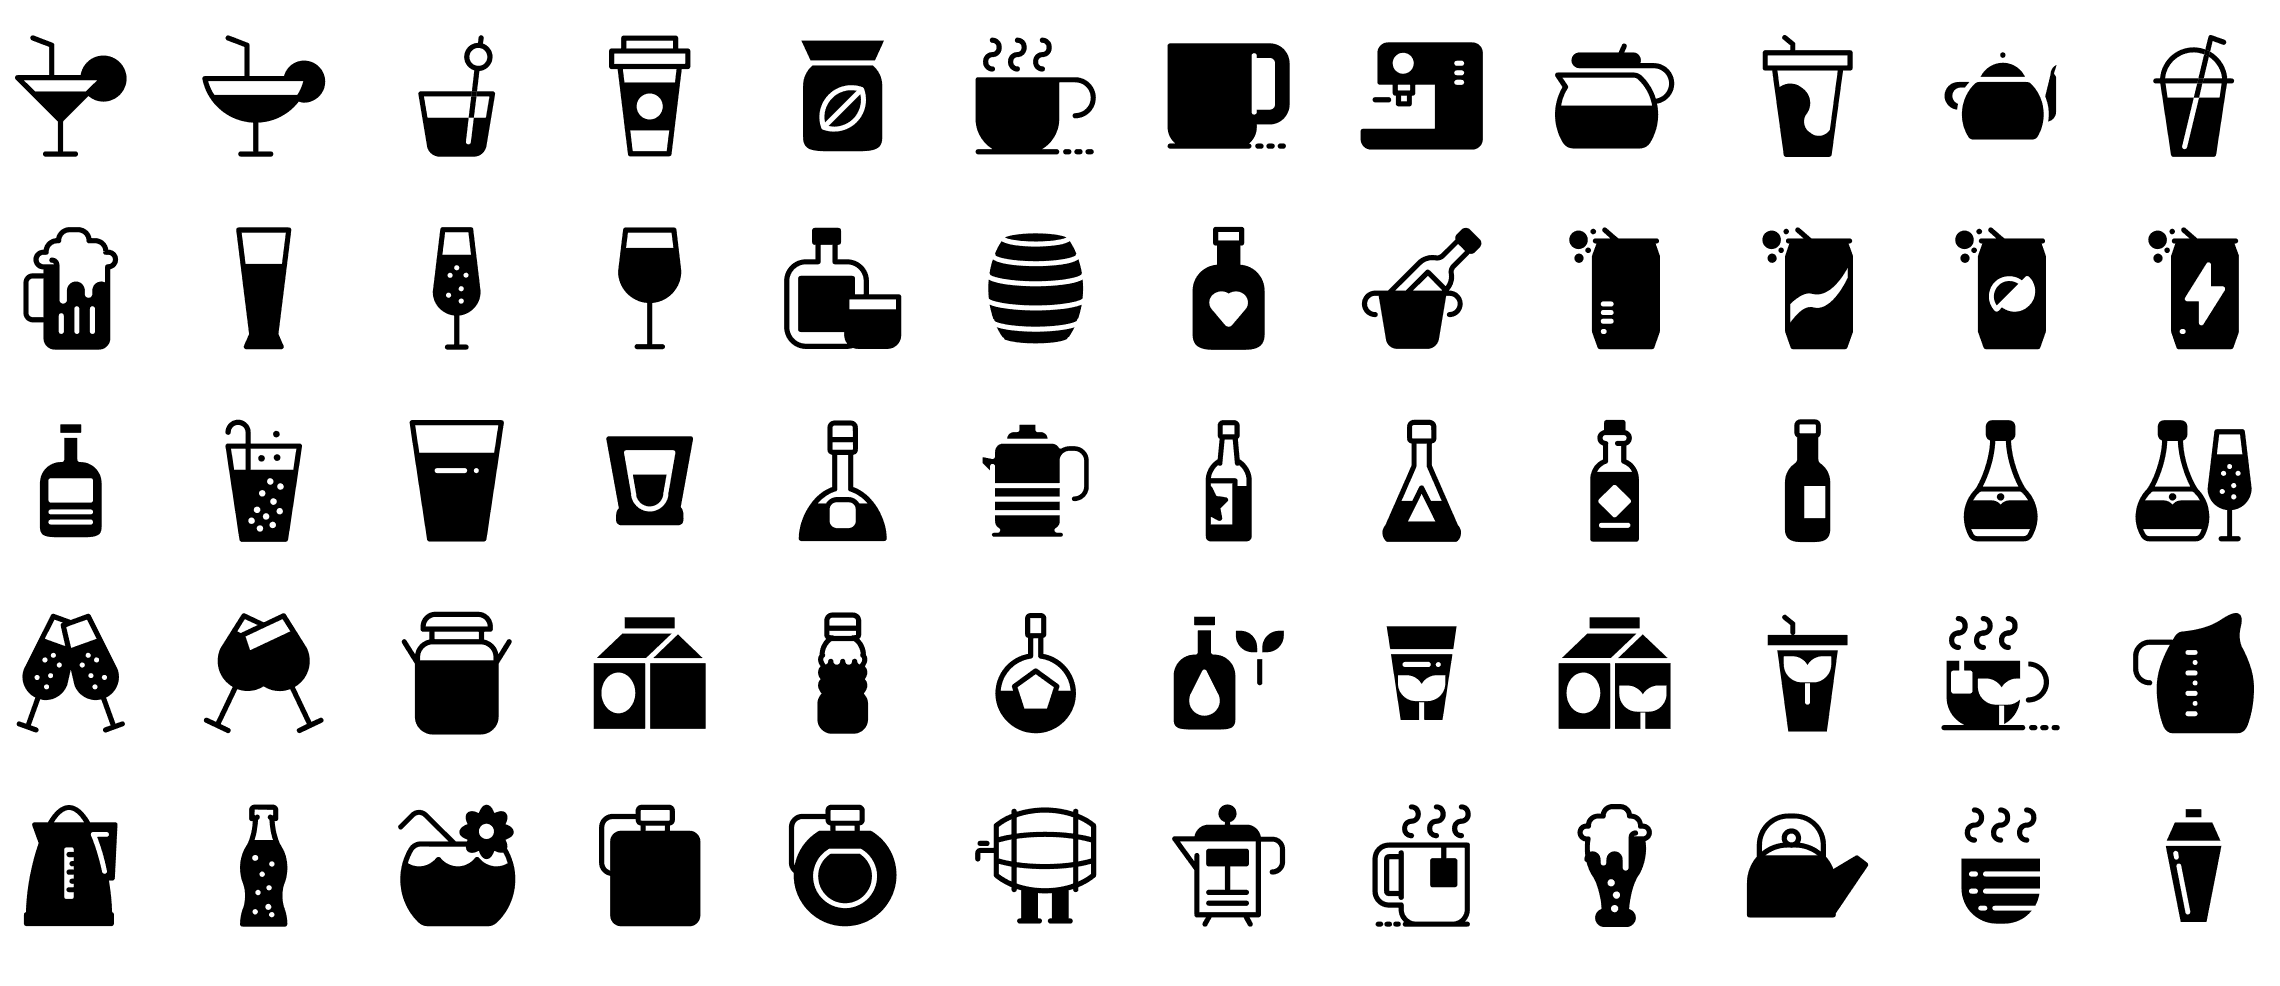 drinks-and-beverages-glyph-icons-preview